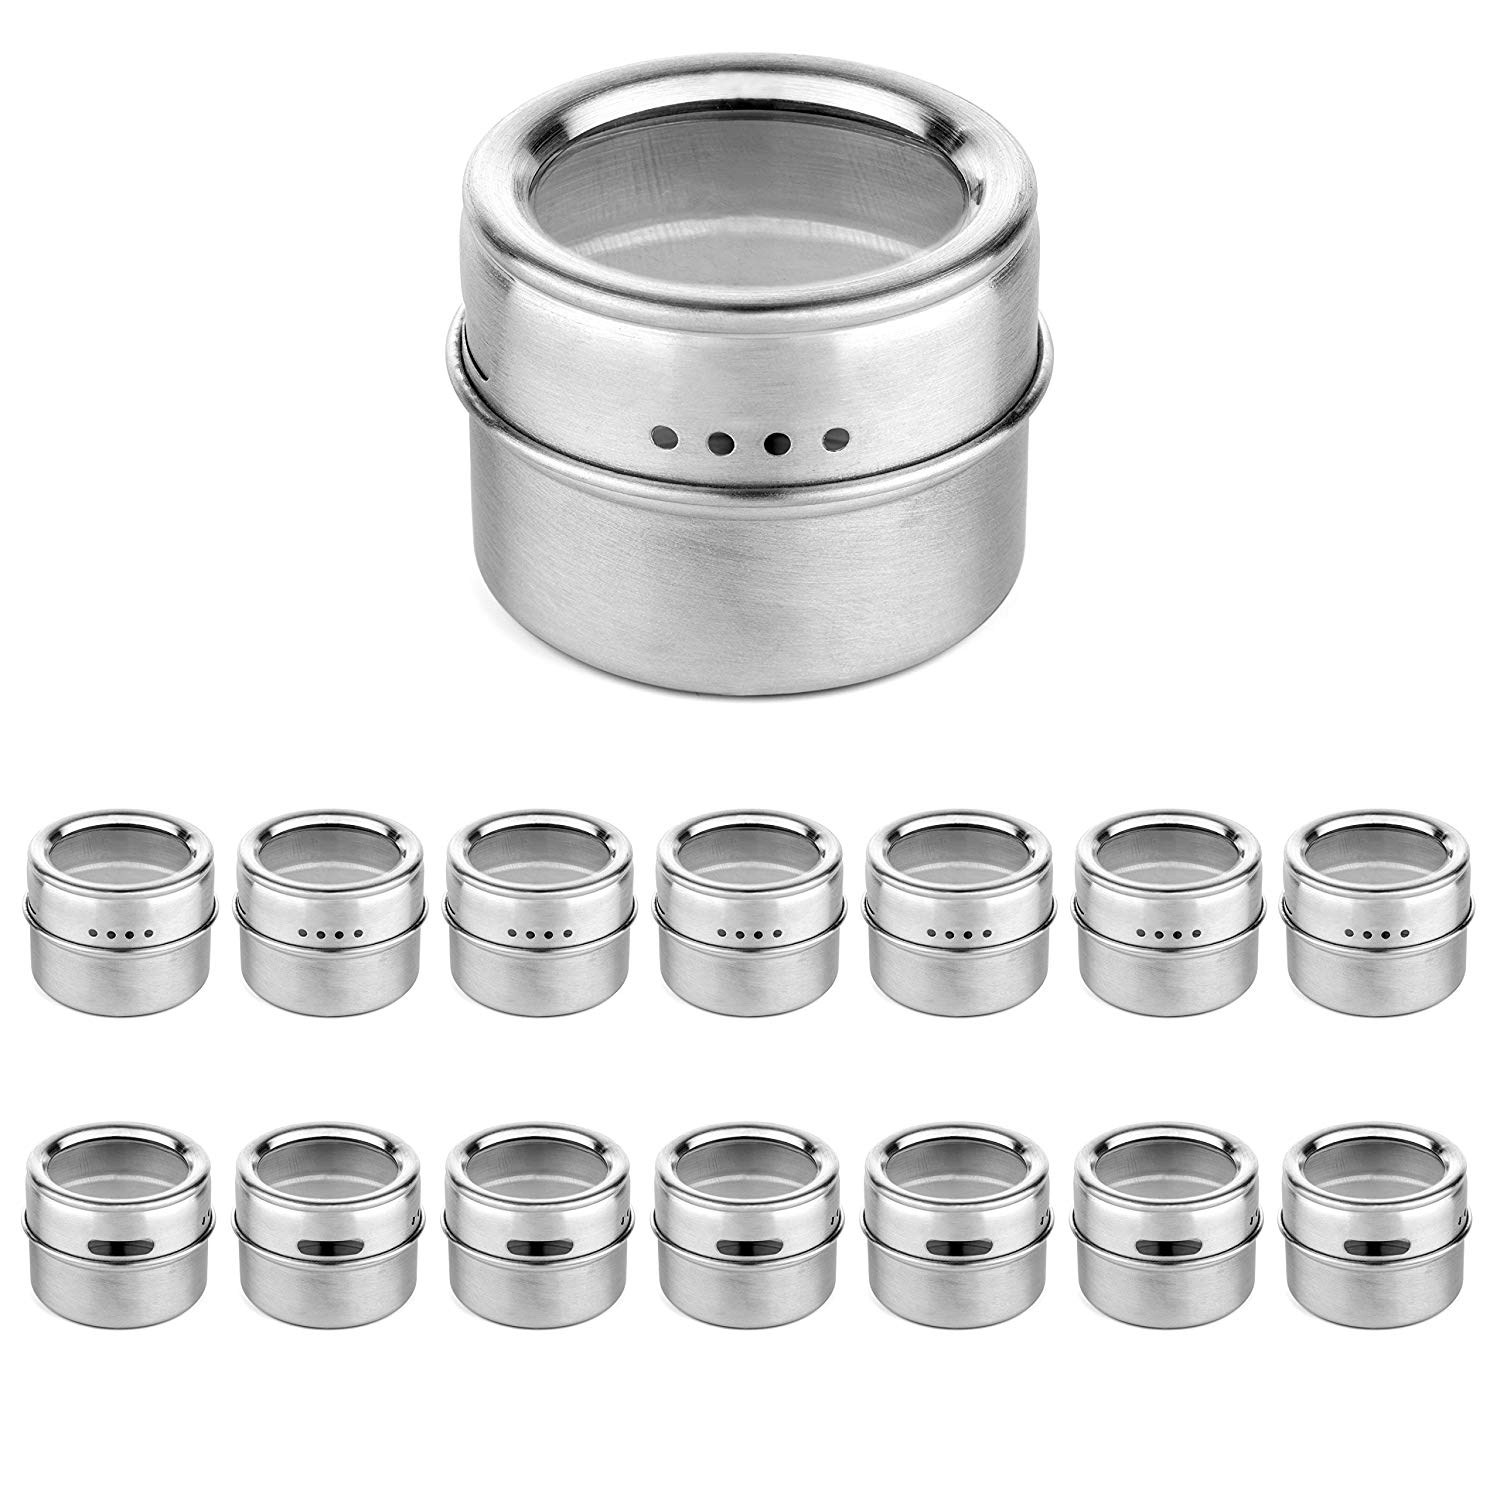 Botique-Magnetic Spice Jar With A Strong Transparent Top Cover. Stainless Steel Round Storage Spice Jar, Shake Or Flip, MagnetBotique-Magnetic Spice Jar With A Strong Transparent Top Cover. Stainless Steel Round Storage Spice Jar, Shake Or Flip, Magnet